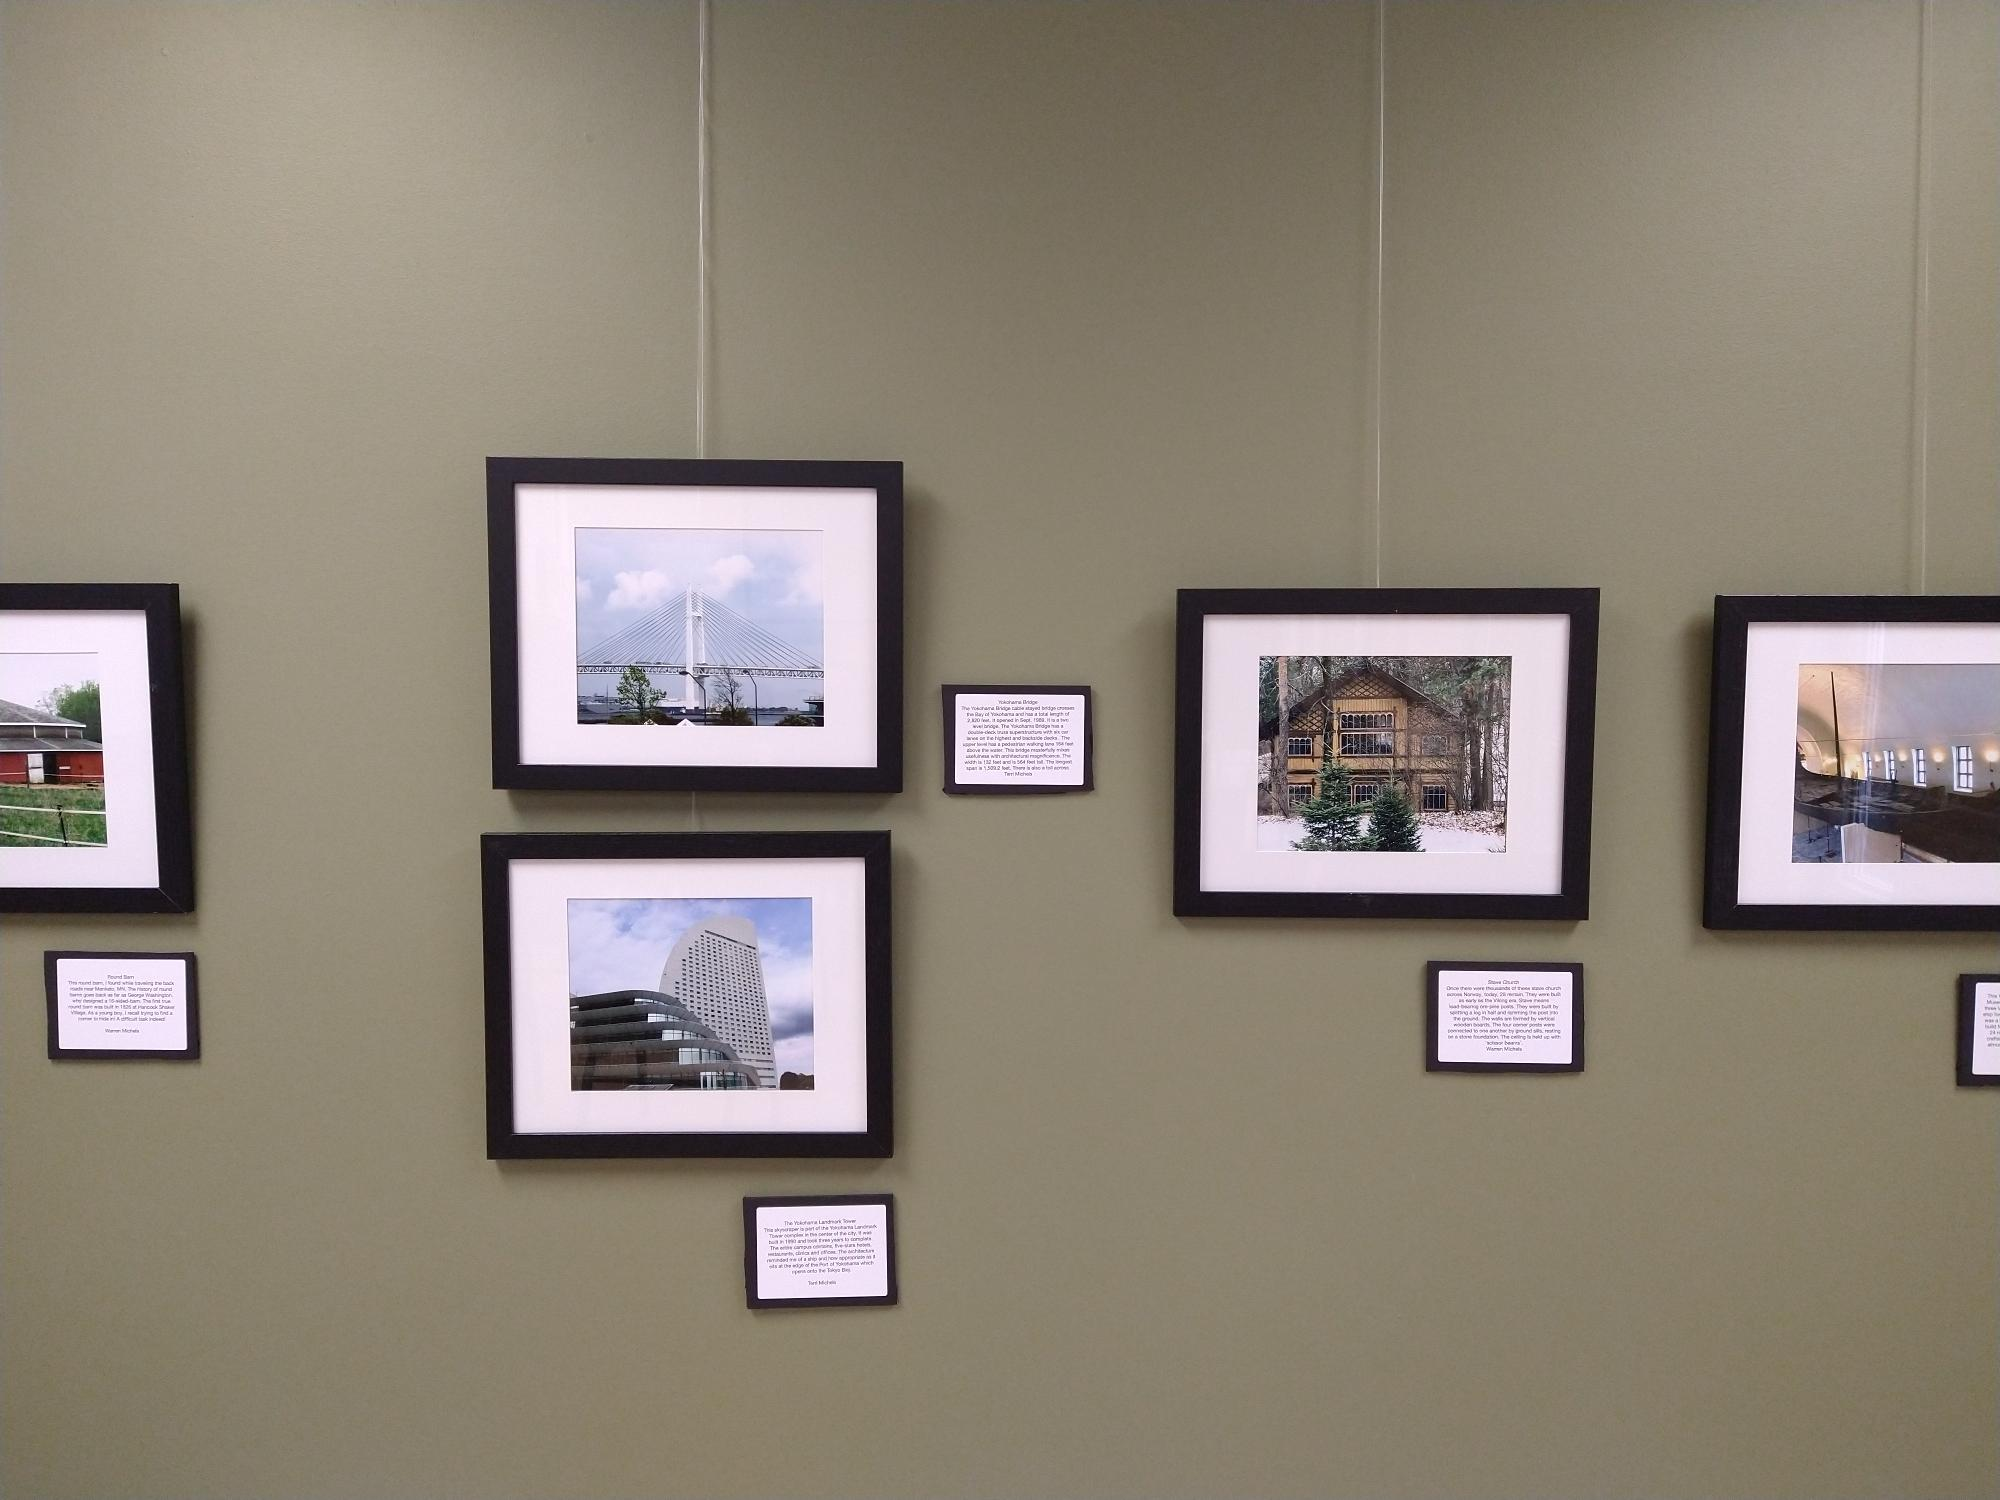 Architectural Elements by the Bend of the River Photography Club, on display through December 31, 2021